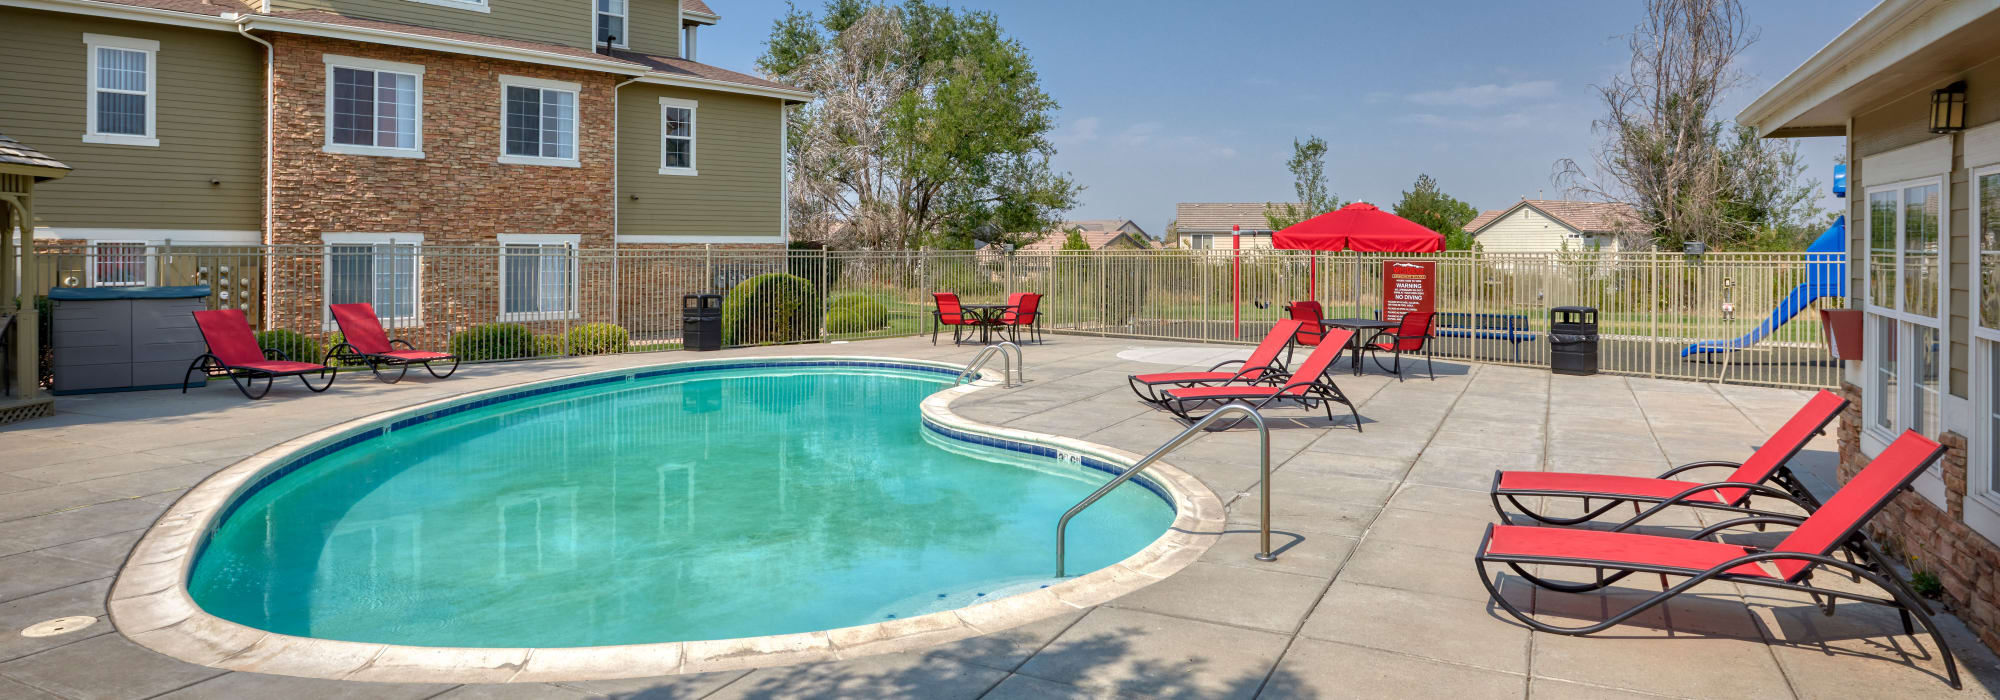 reviews of westridge apartments in aurora co reviews of westridge apartments in